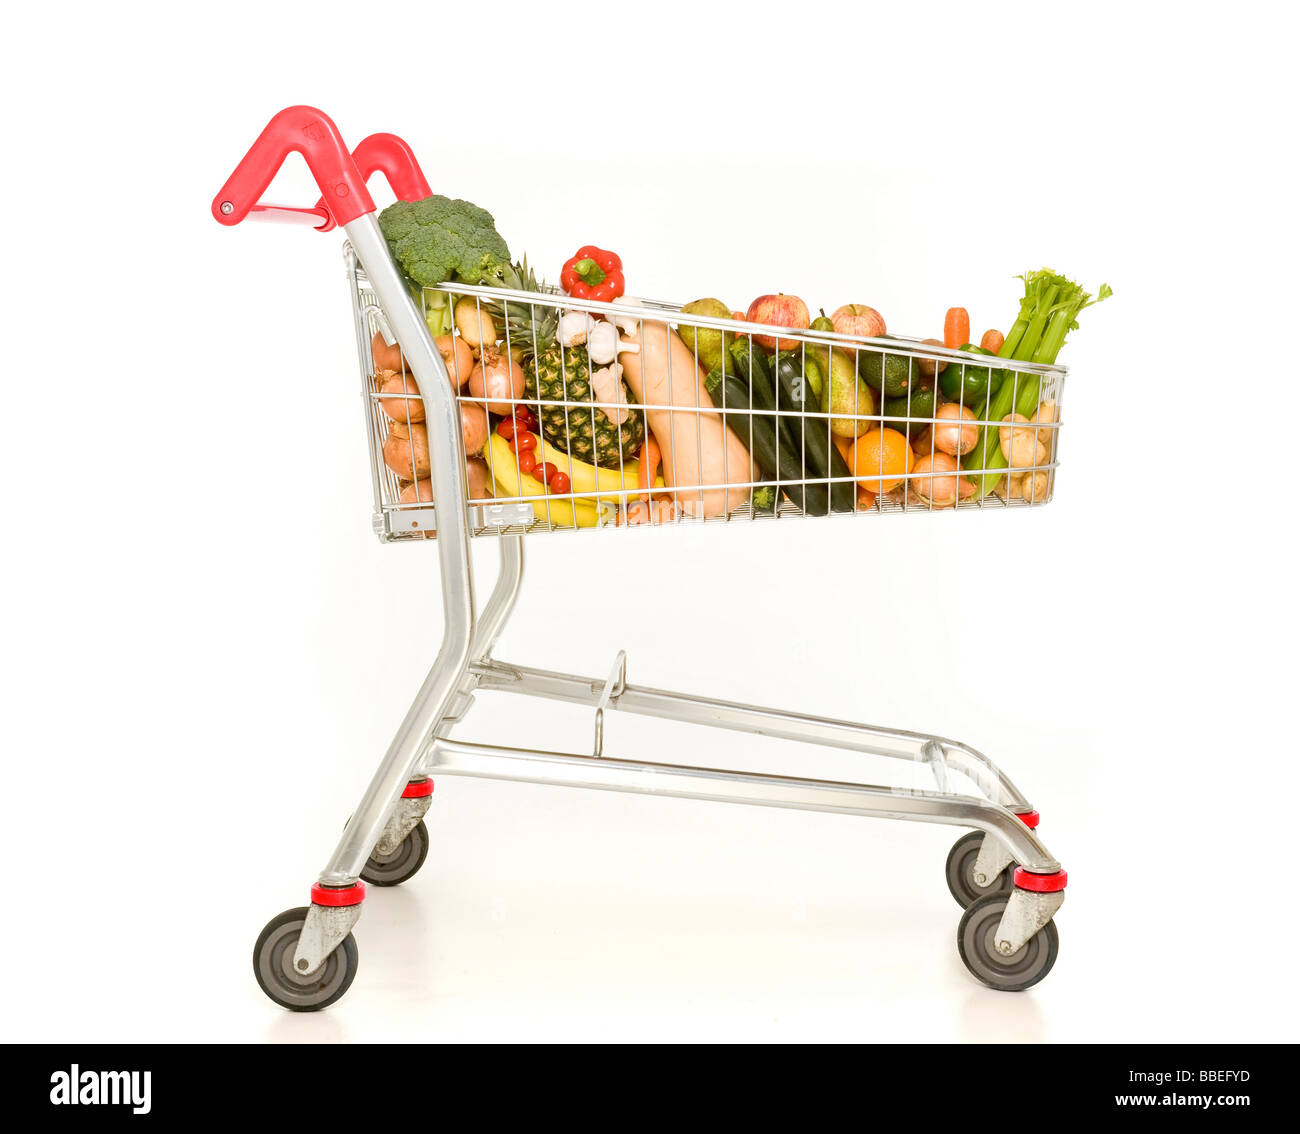 Supermarket shopping trolley filled with fruit and vegetables on white background - Stock Image